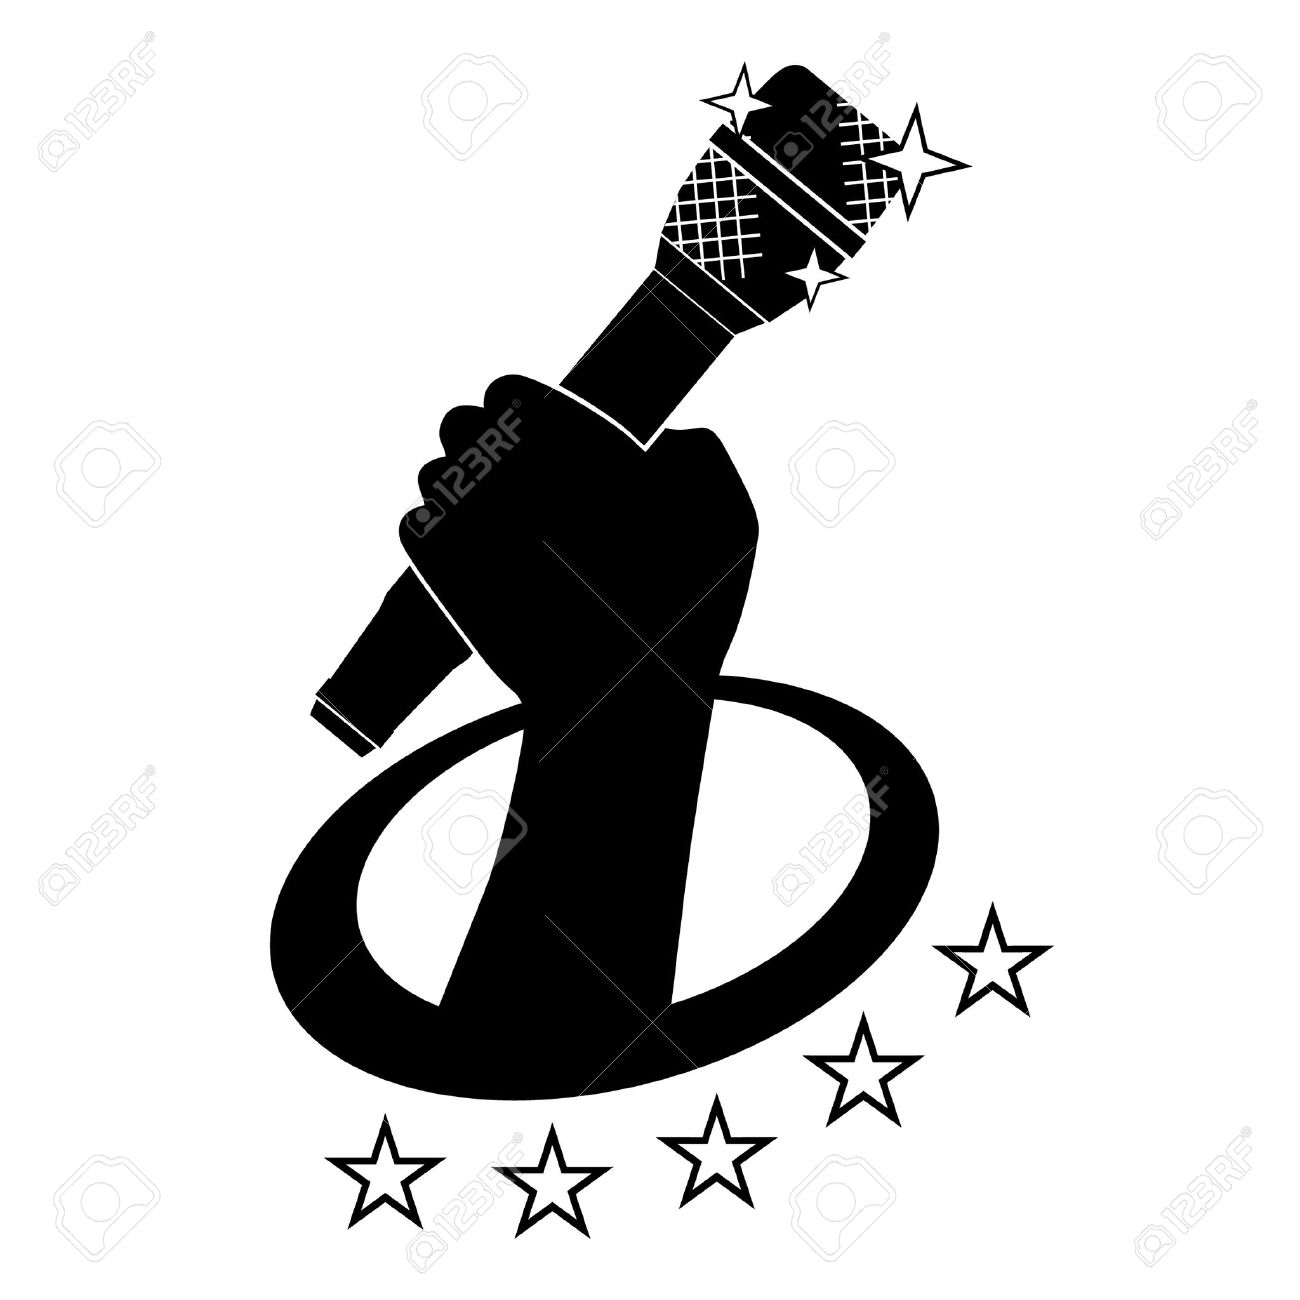 Emblem of hand holding microphone Stock Vector - 10375254